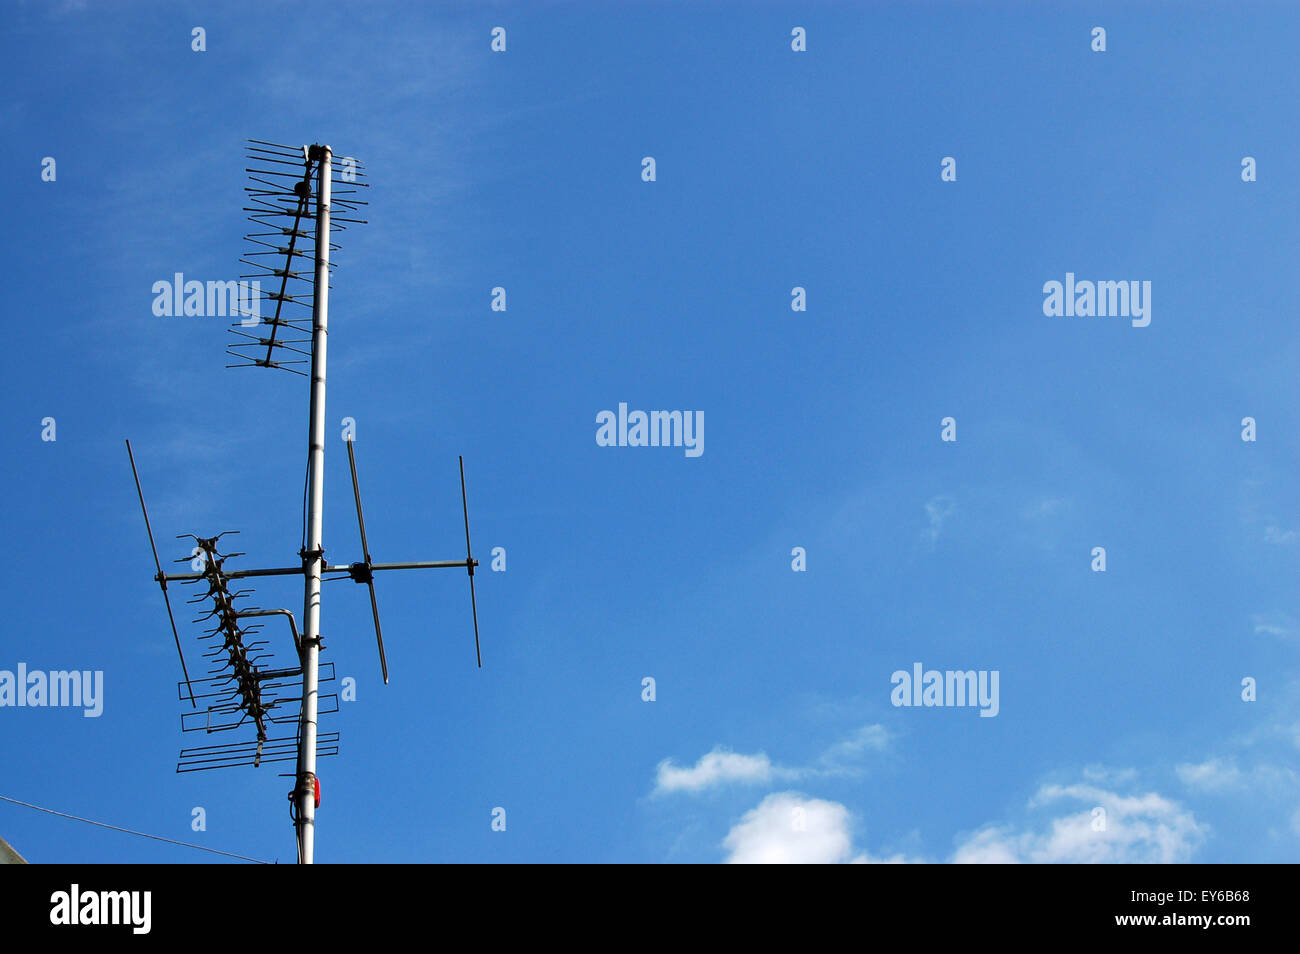 Yagi Stock Photos Images Alamy Tv Antenna Wiring Diagram A Collection Of Television Aerials On Roof Against Blue Sky Sunny